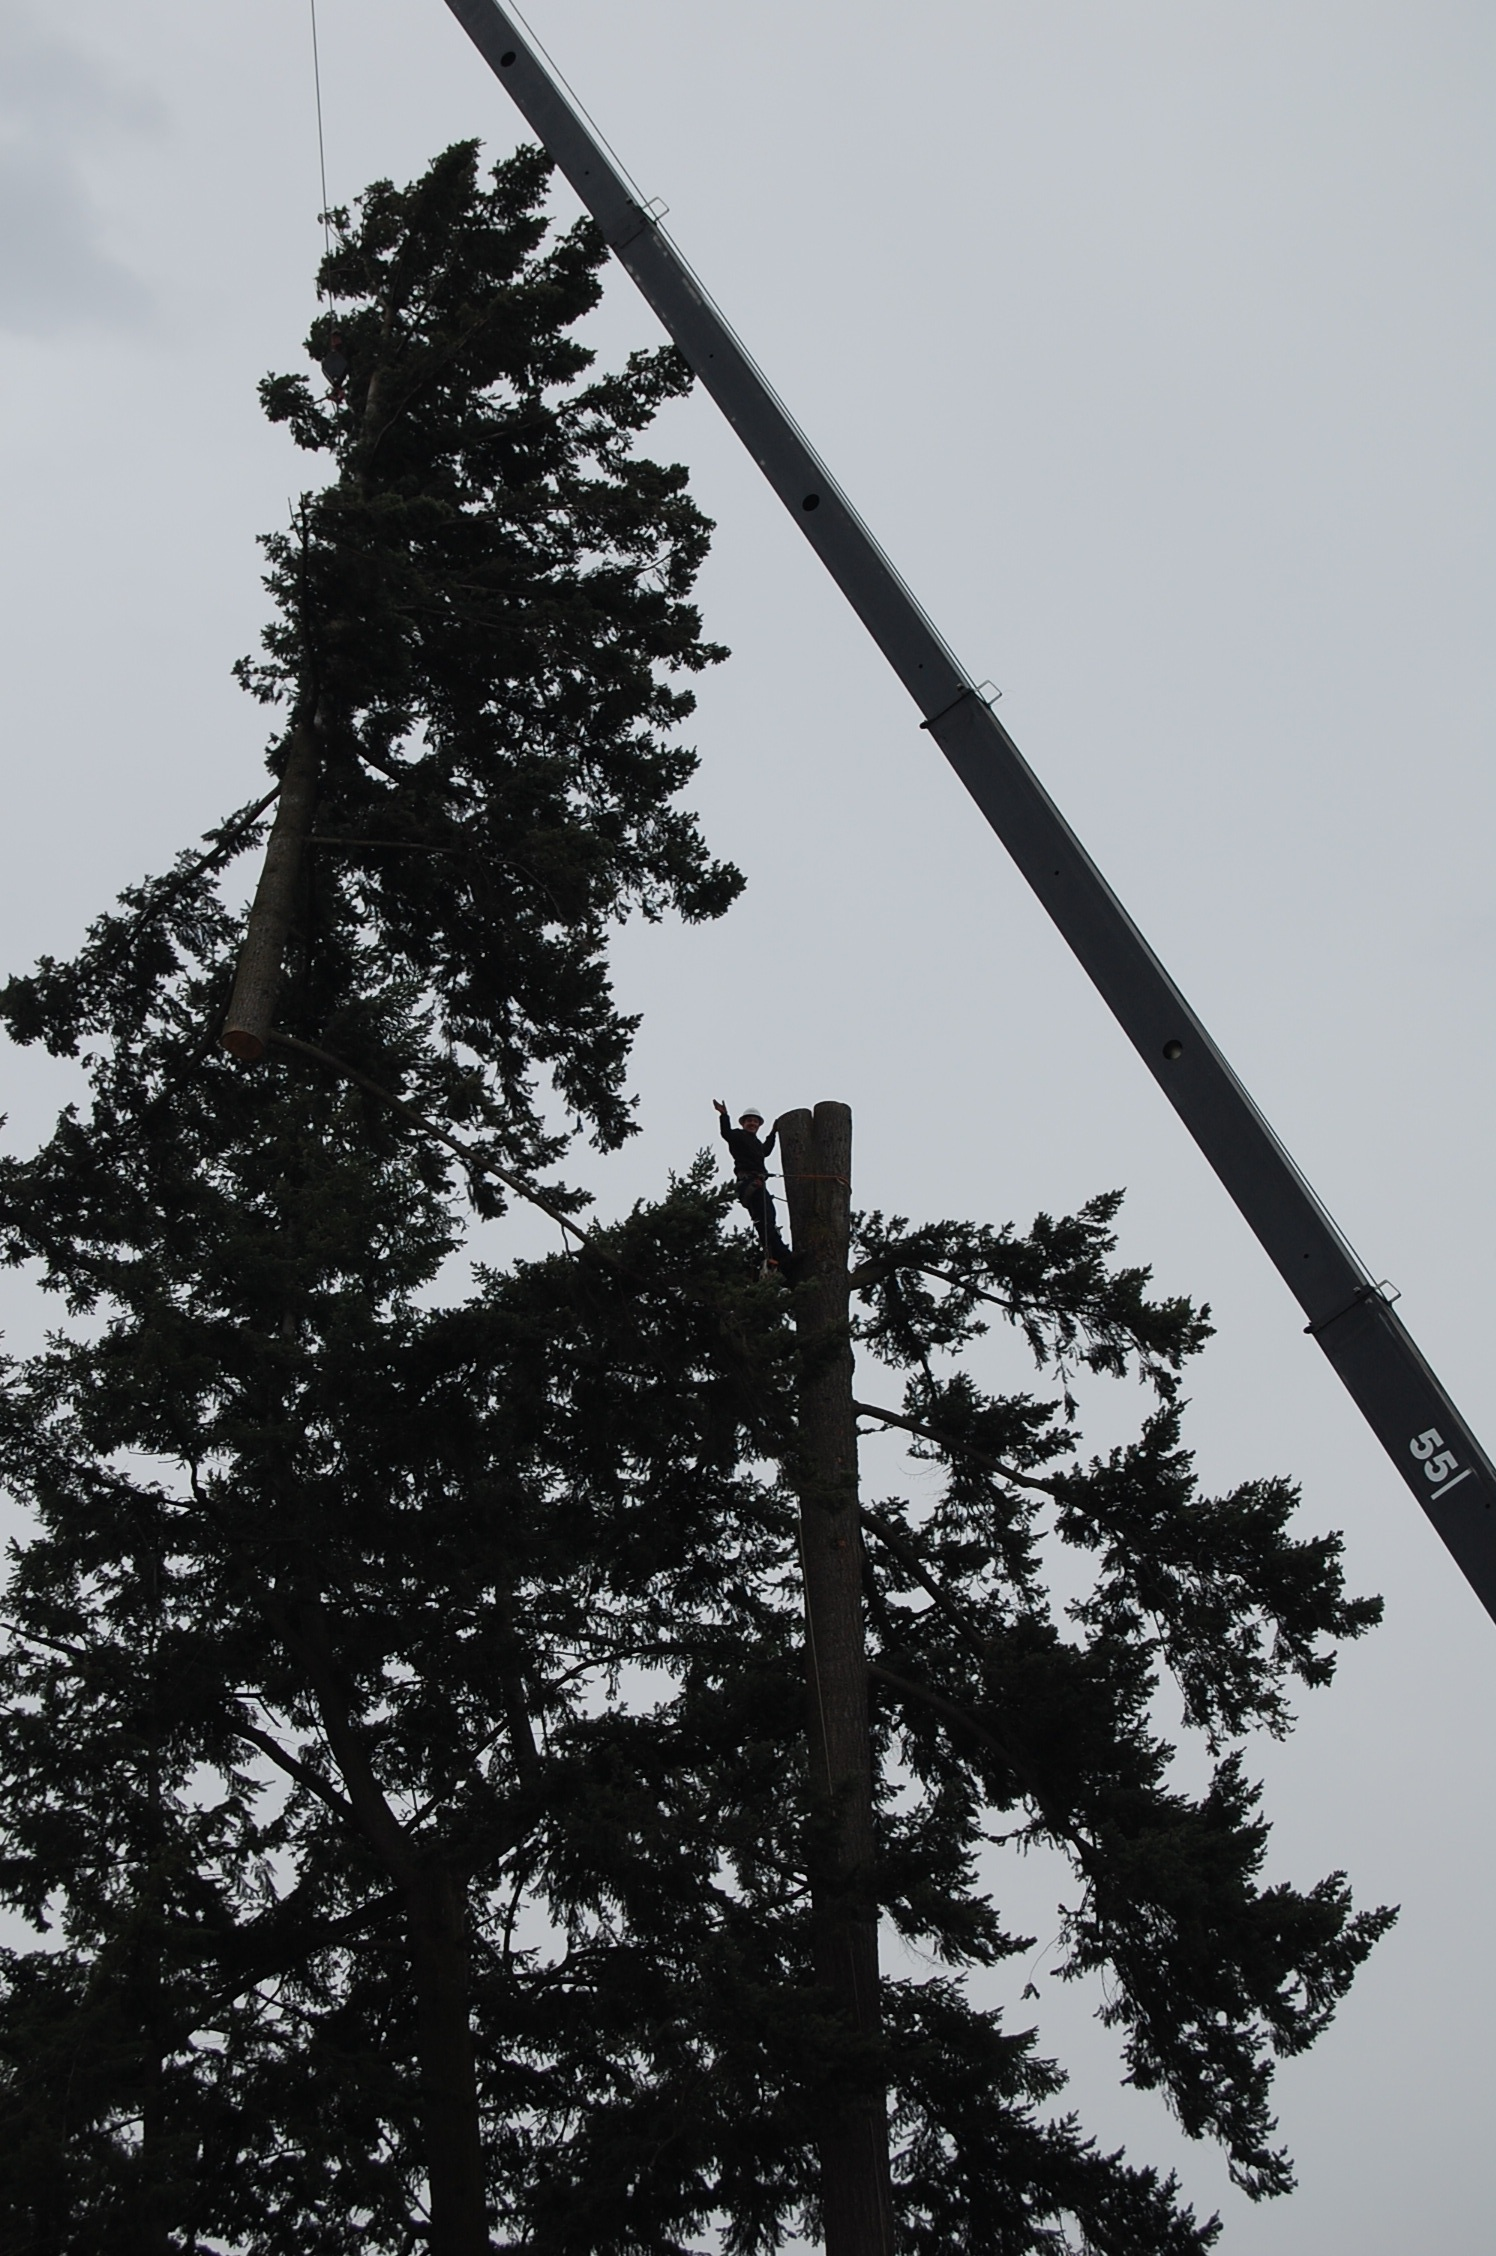 Crane tree removal out of fenced back yard.